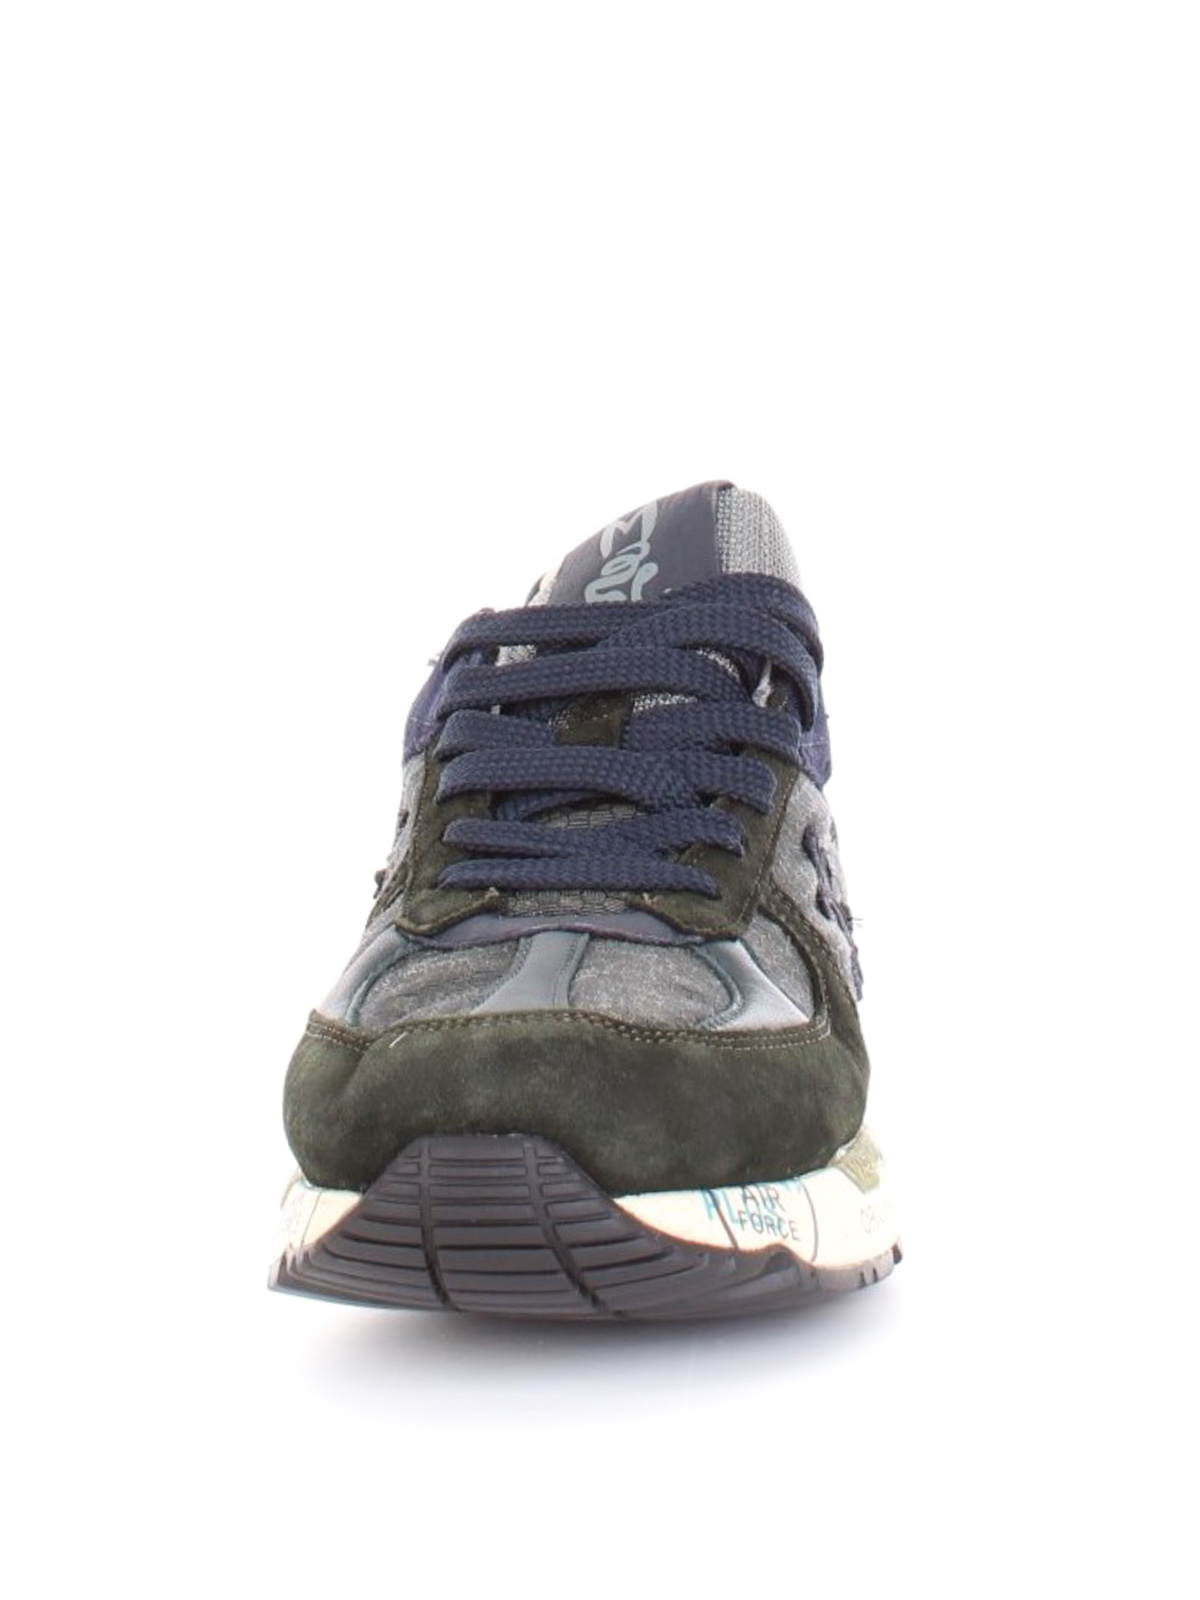 SNEAKERS MASE SUOLA IN GOMMA MADE IN ITALY